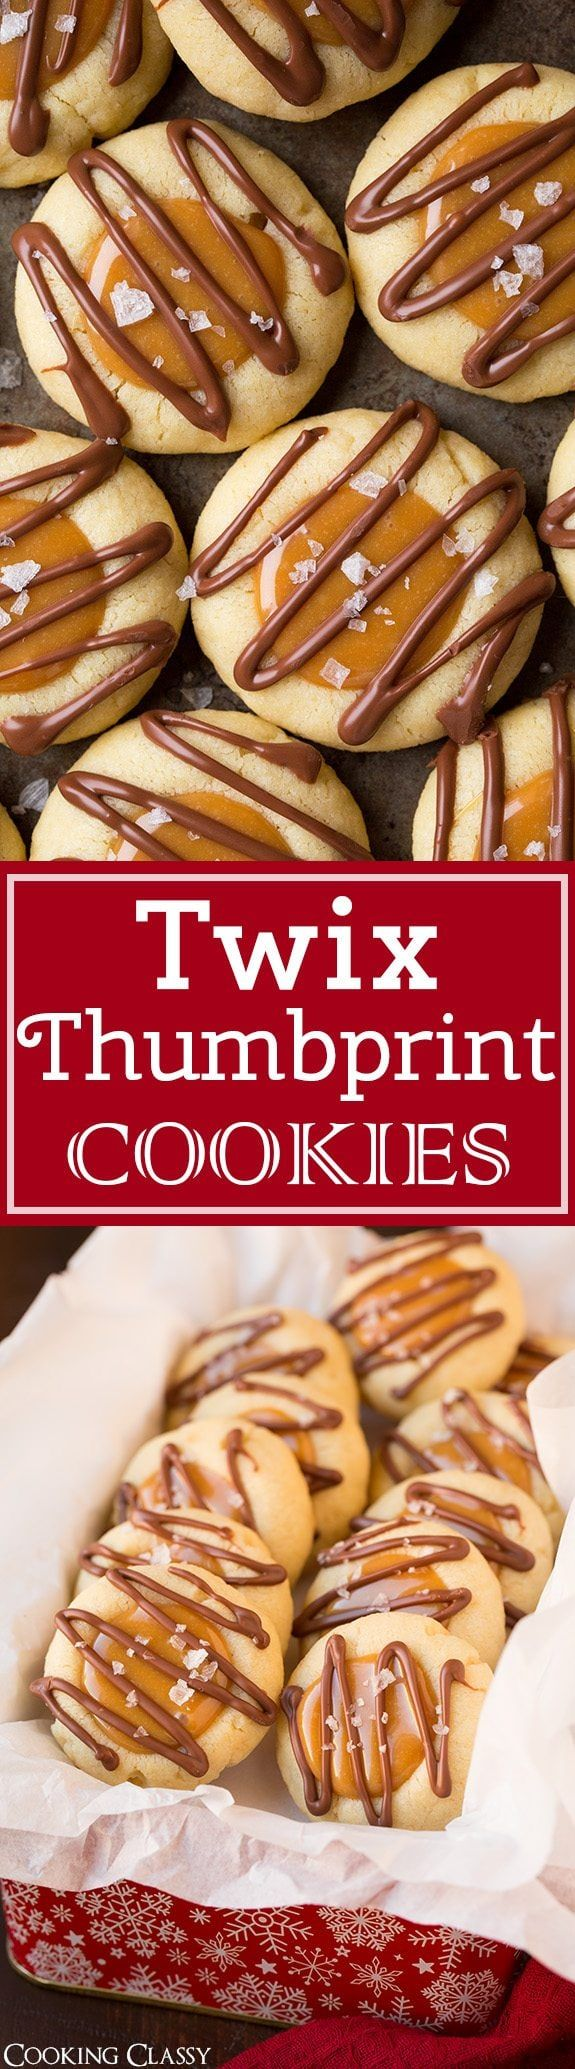 Twix Thumbprint Cookies  A buttery tender thumbprint cookie filled with an easy sweet caramel filling and finished with a milk chocolate drizzle and flaked sea salt These...